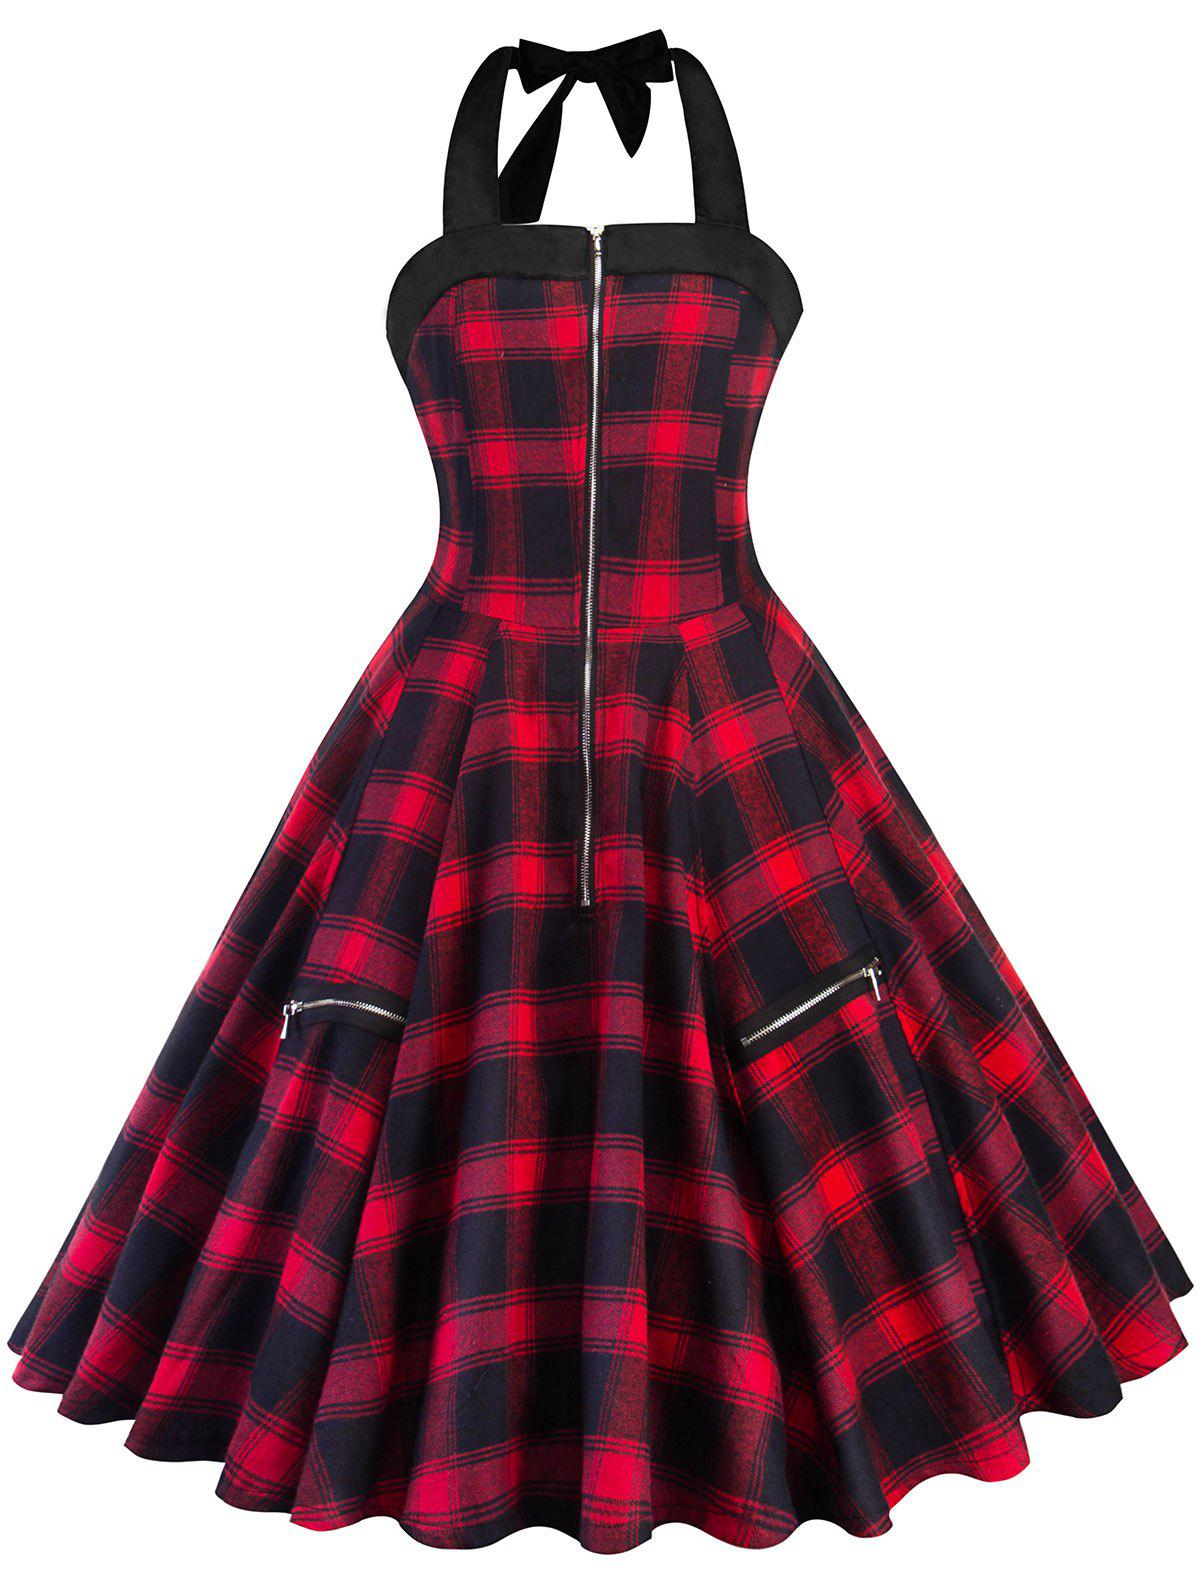 Zipper Embellished Tartan Print A Line Dress - RED M